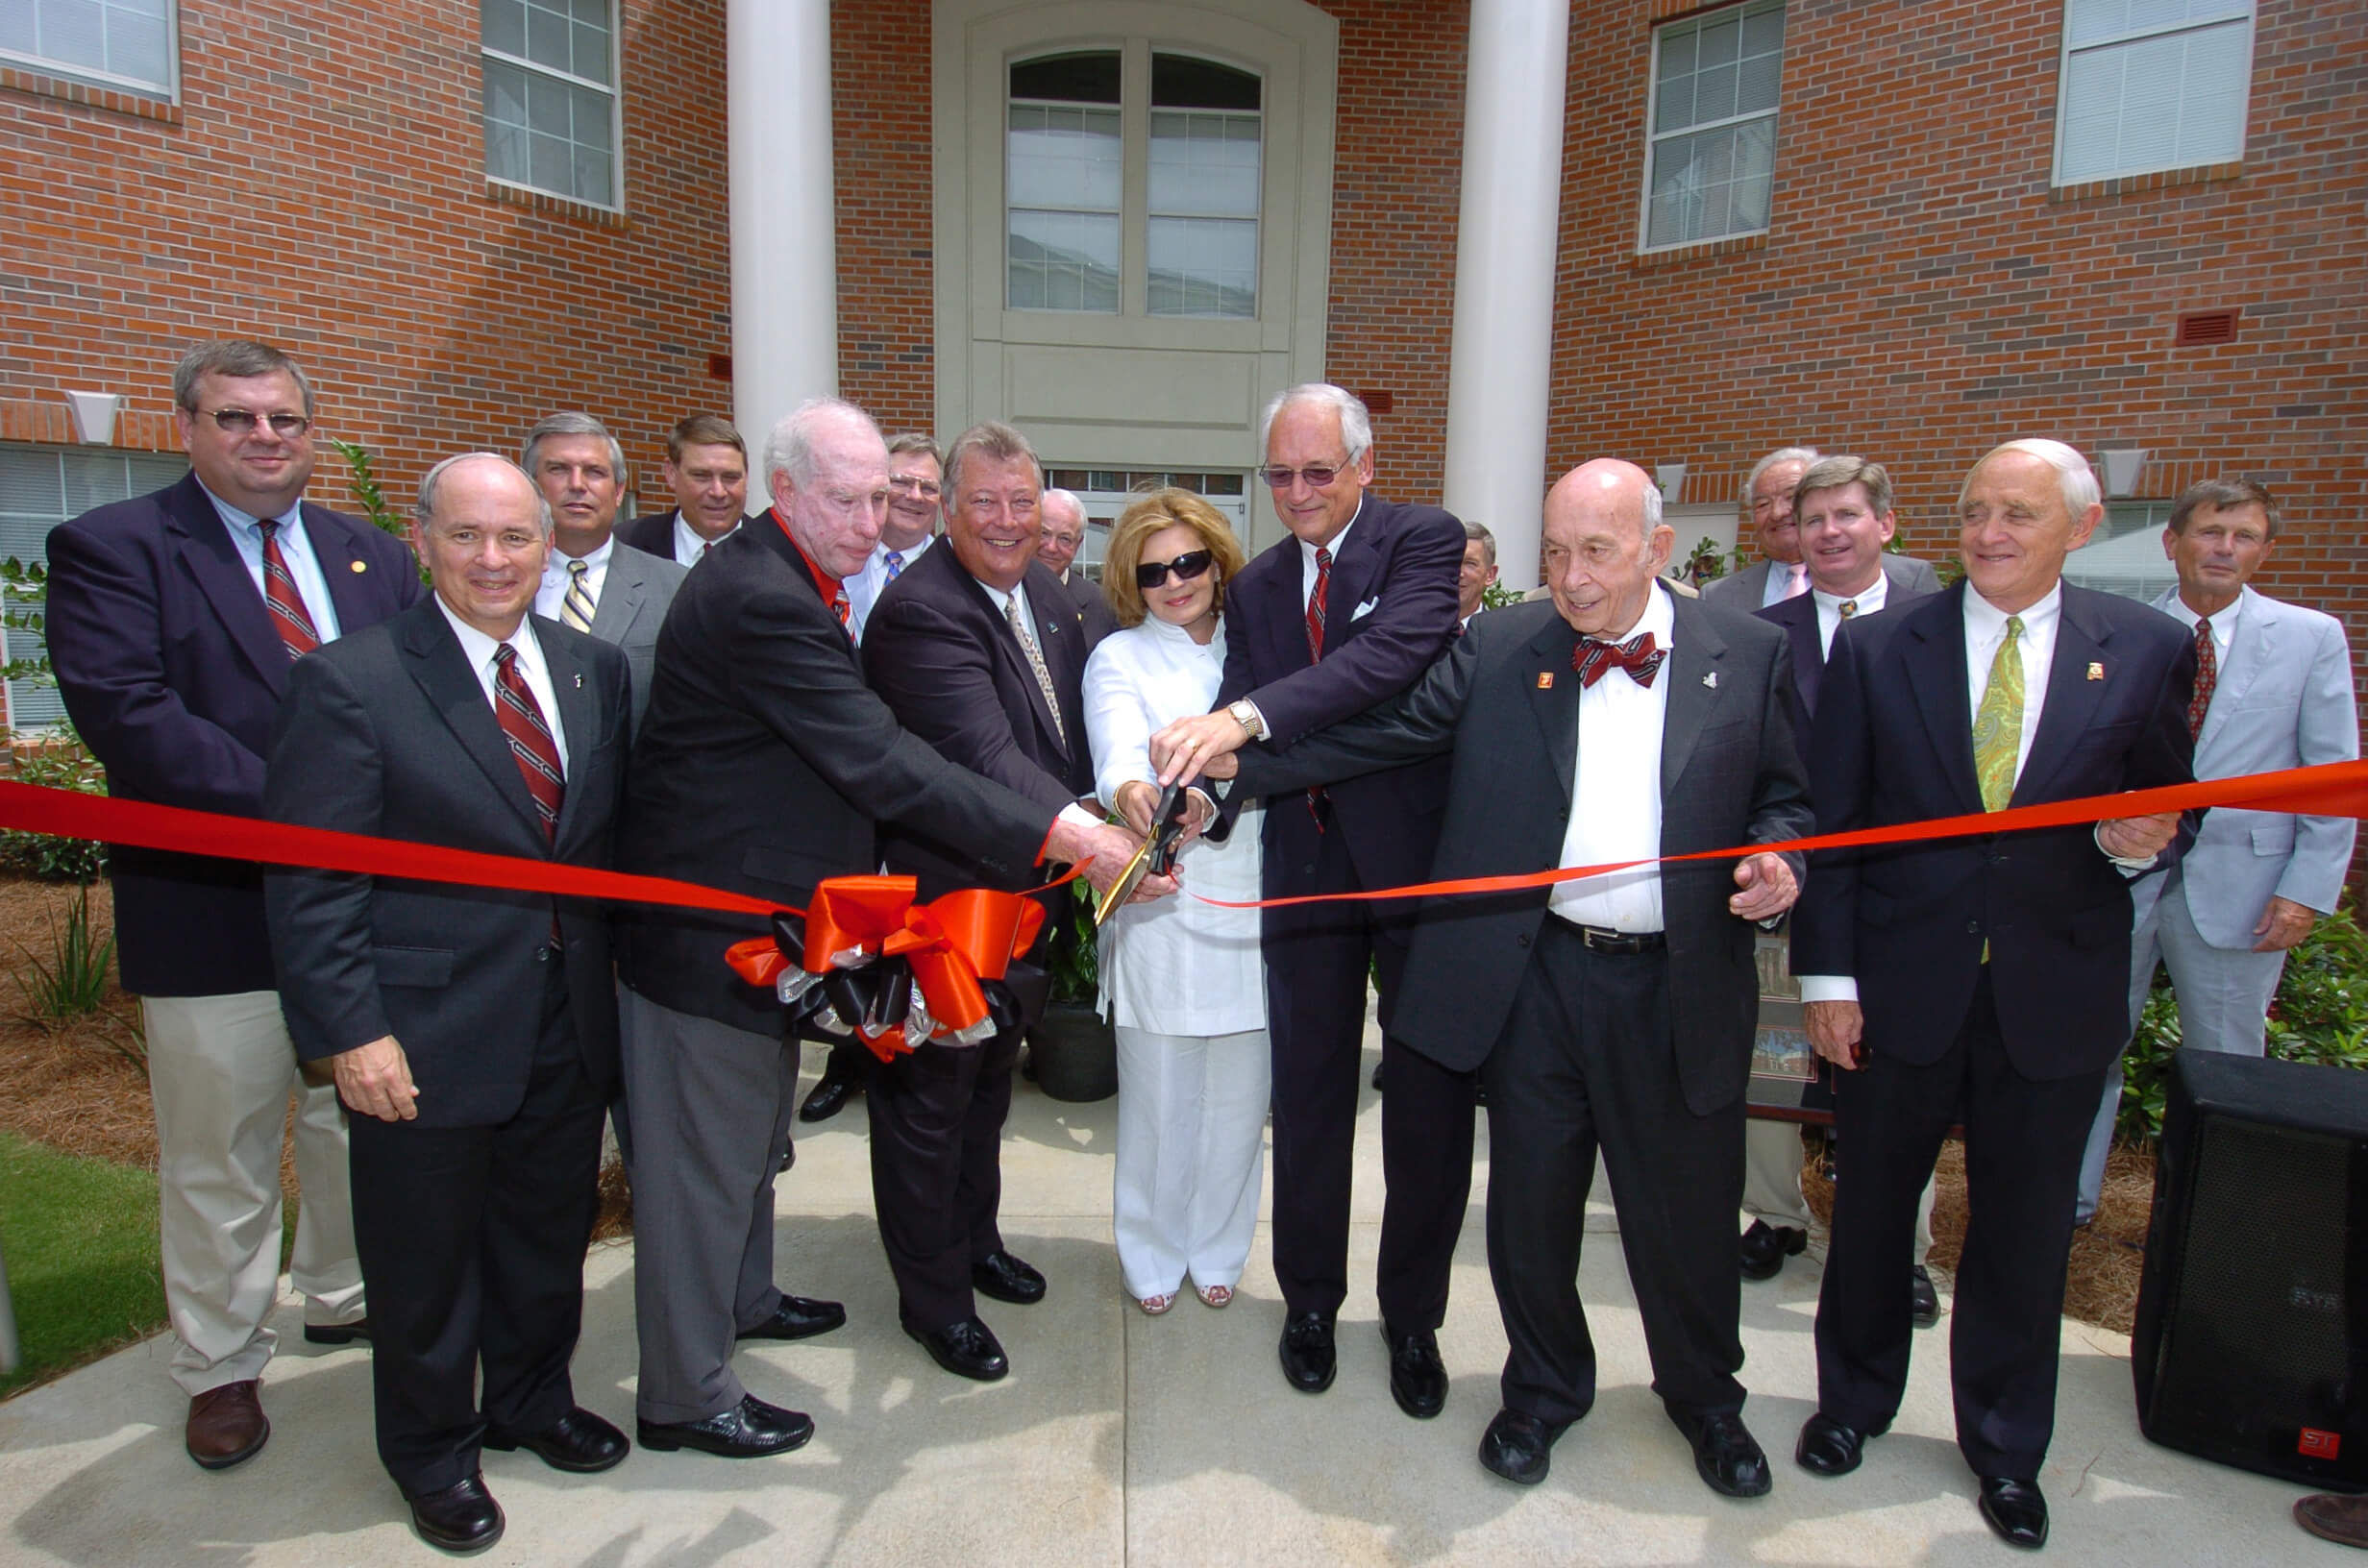 The Chancellor and First Lady are joined by Trustees and other dignitaries to officially open Trojan Village, the University's four-complex, apartment-style residence halls.